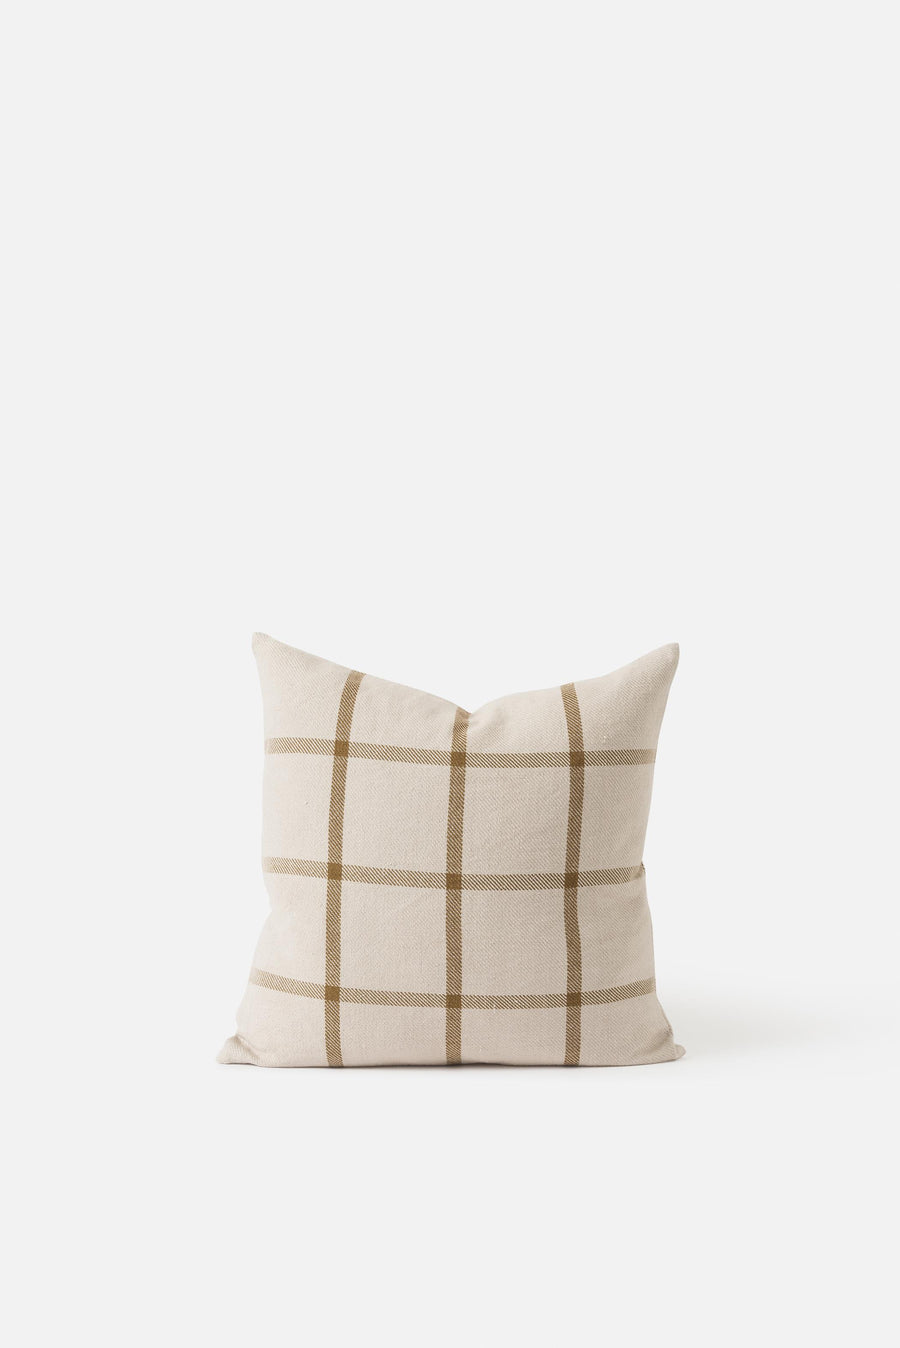 Bento Woven Cushion Cover